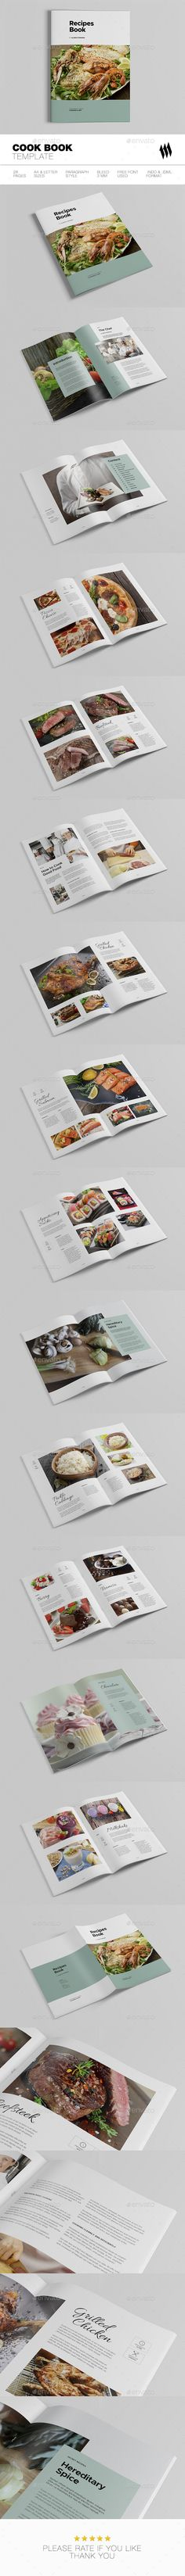 Cookbook / Recipe Book Template InDesign INDD - 28 Pages, A4 & US Letter Size http://ecommerce.jrstudioweb.com/